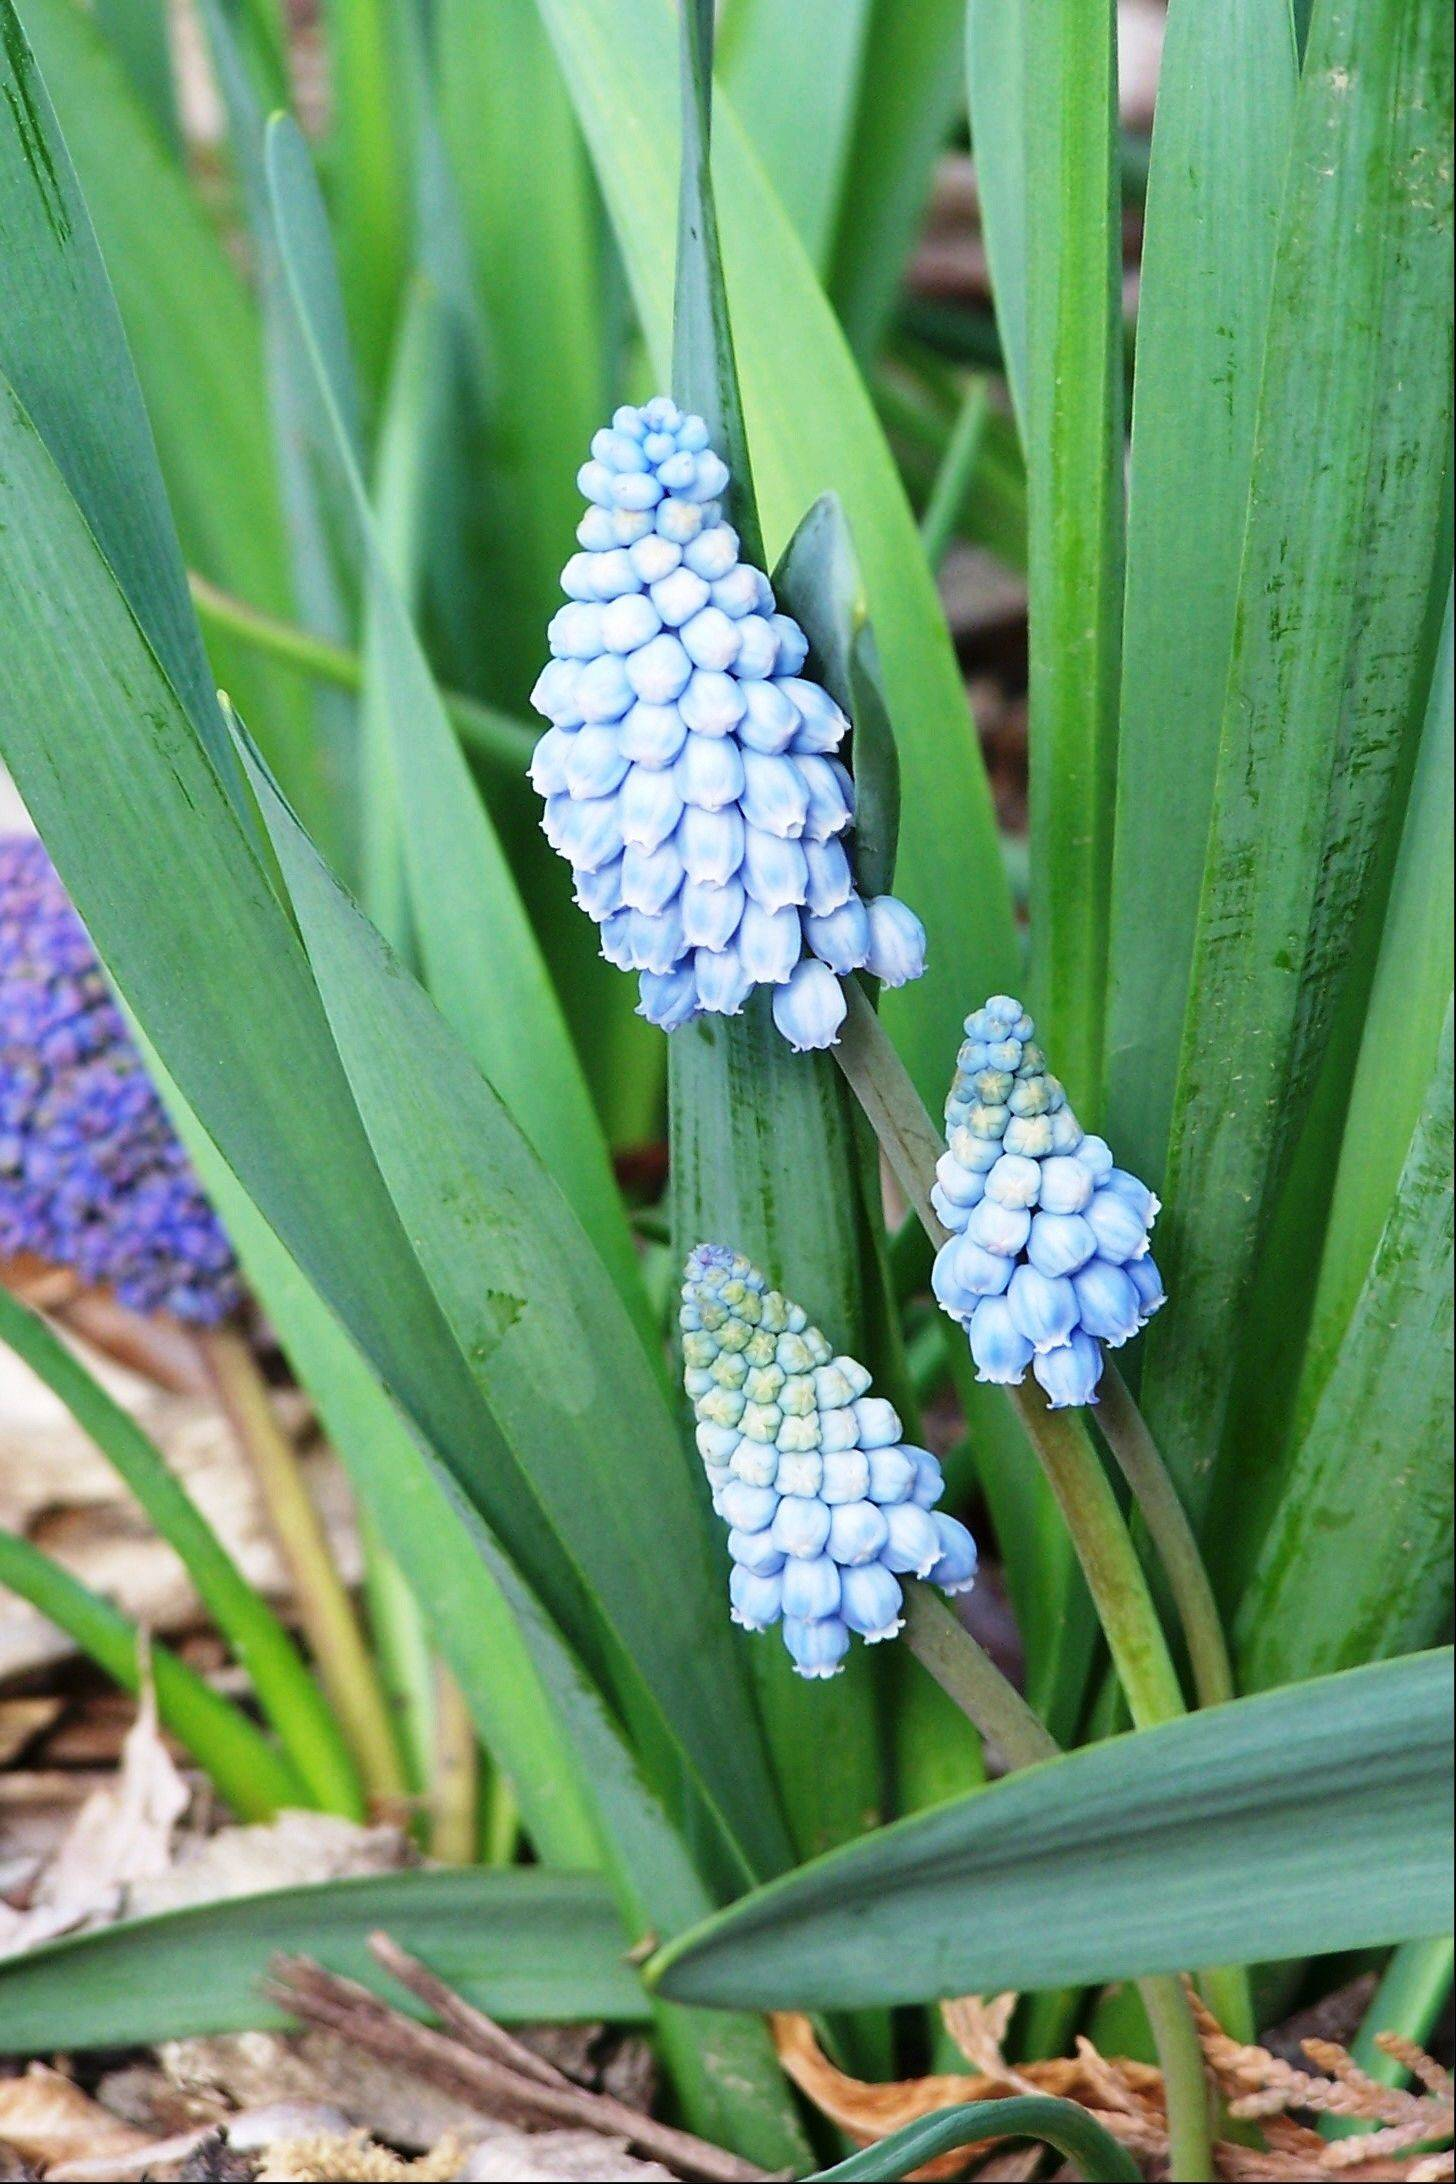 Grape hyacinths brighten gardens with a fragrant spike of blooms.